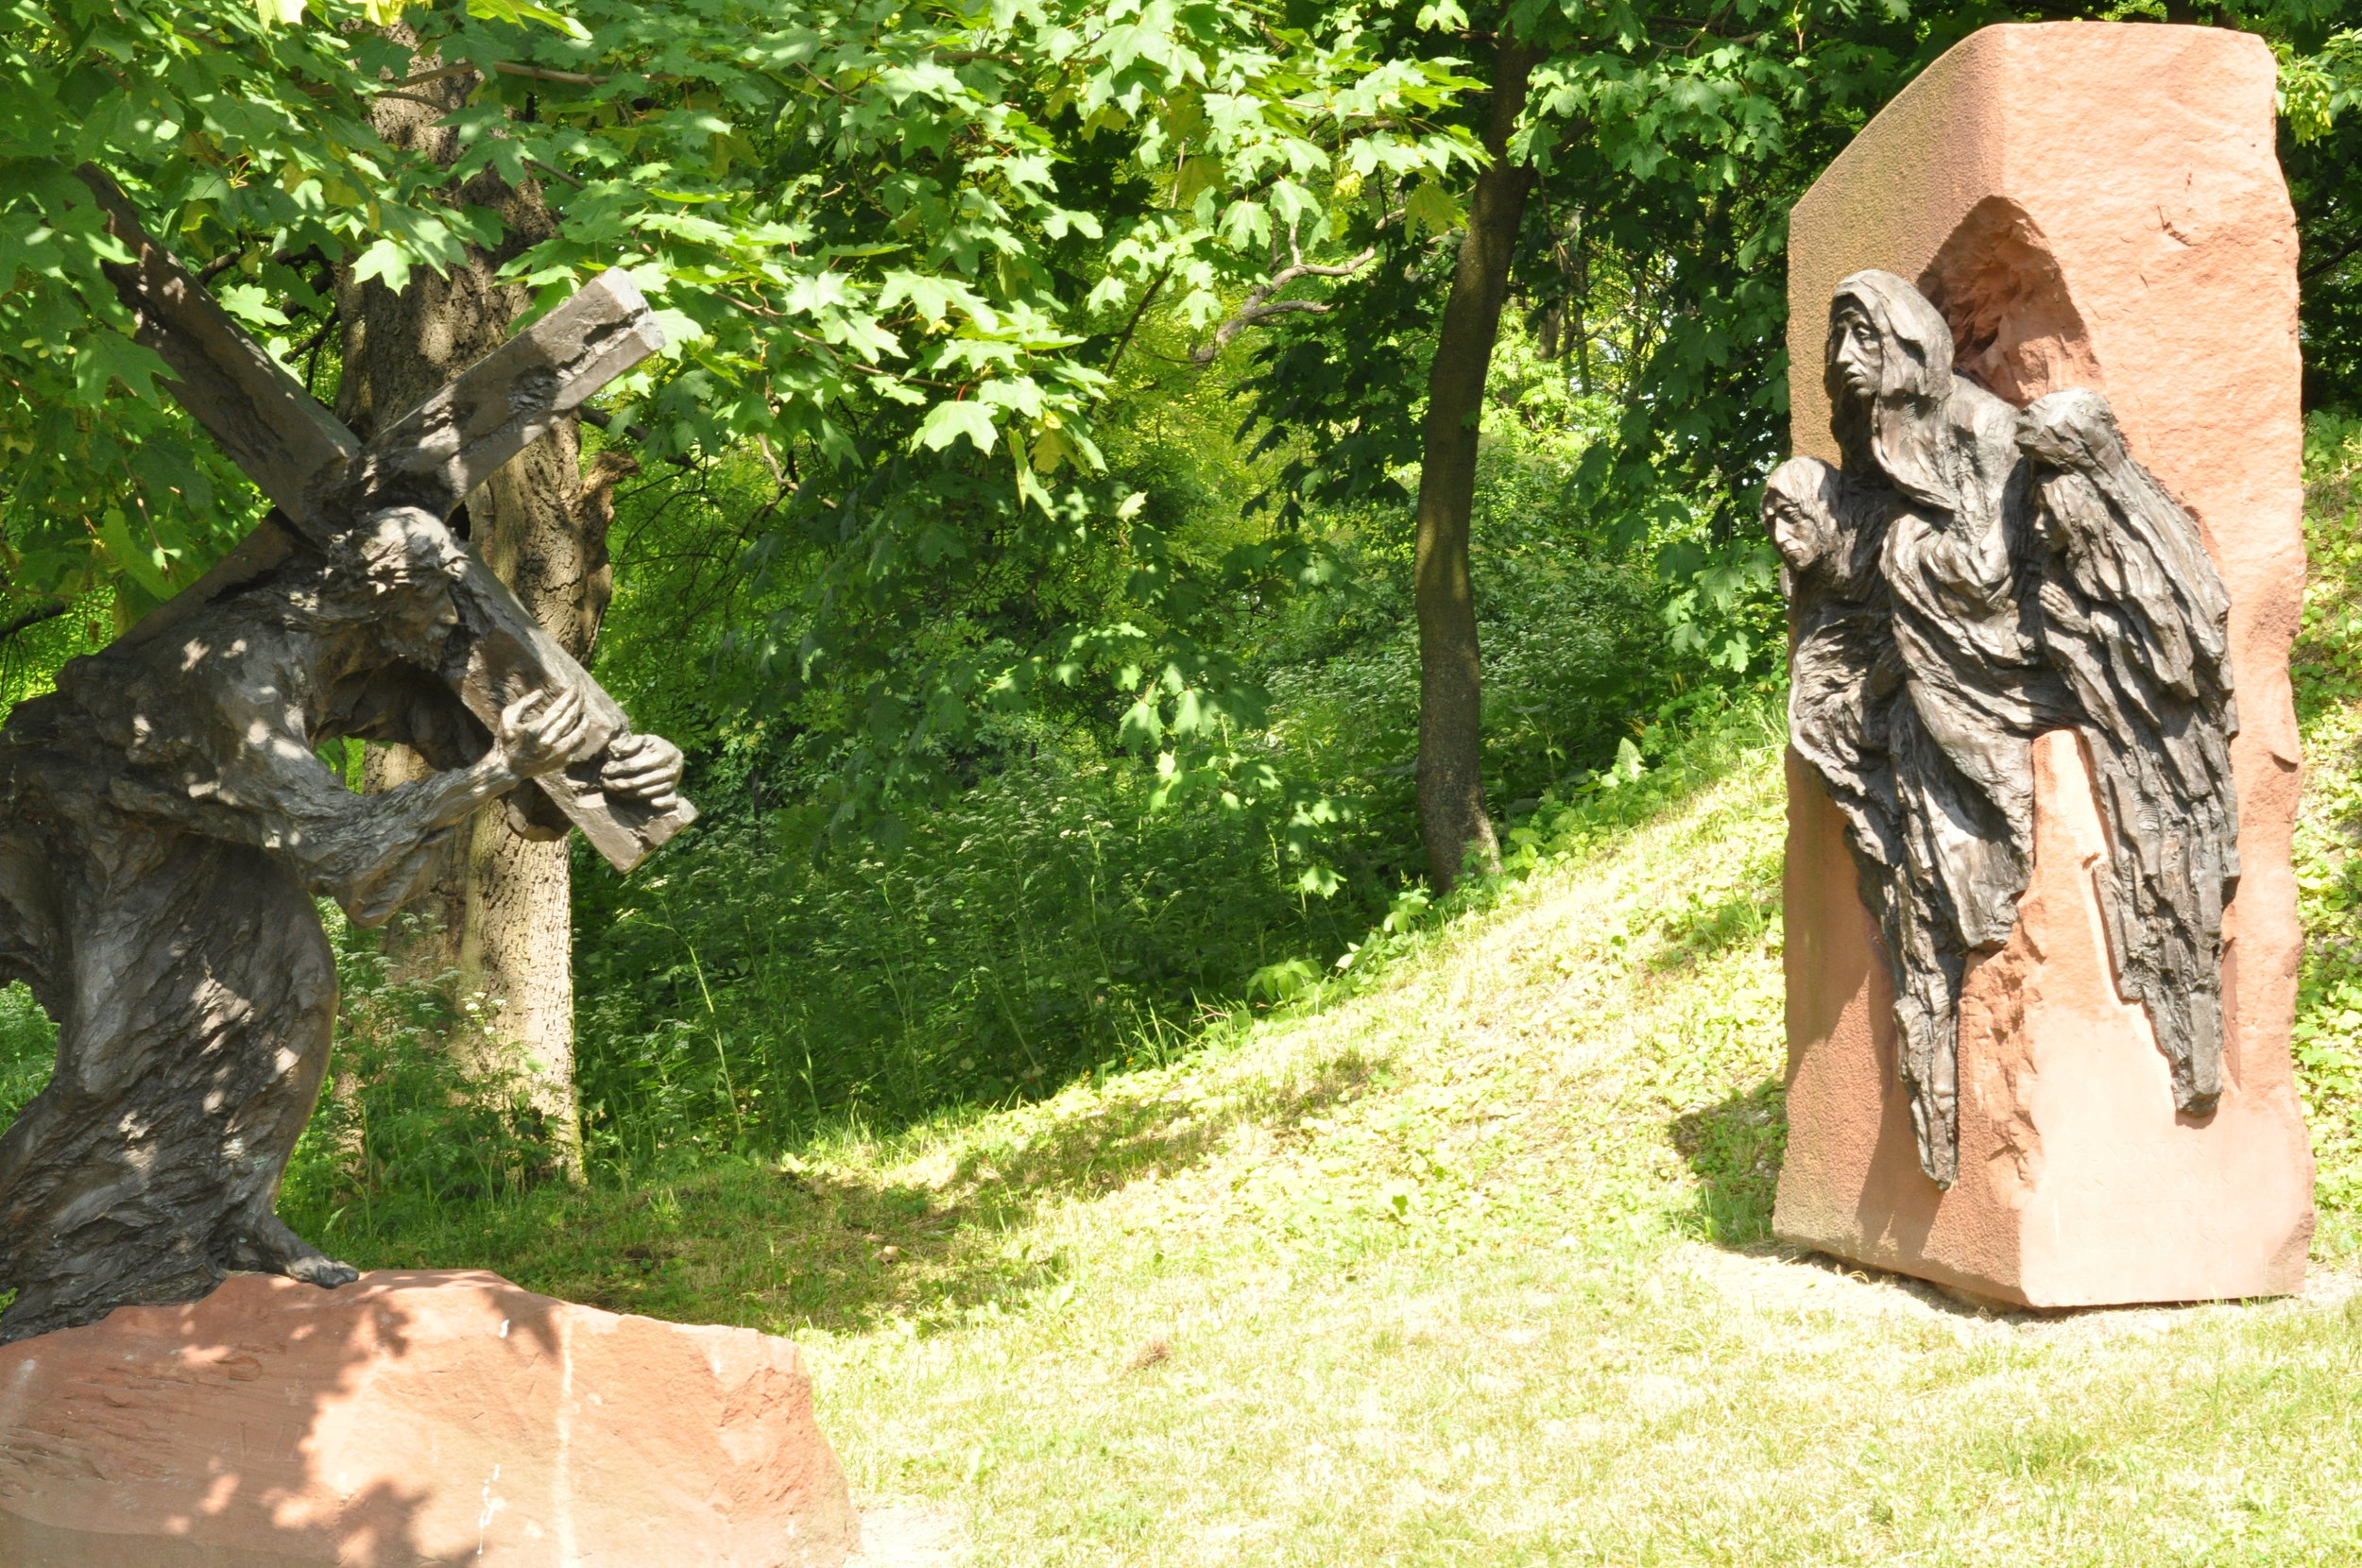 Stations of the Cross in Chelm, Poland